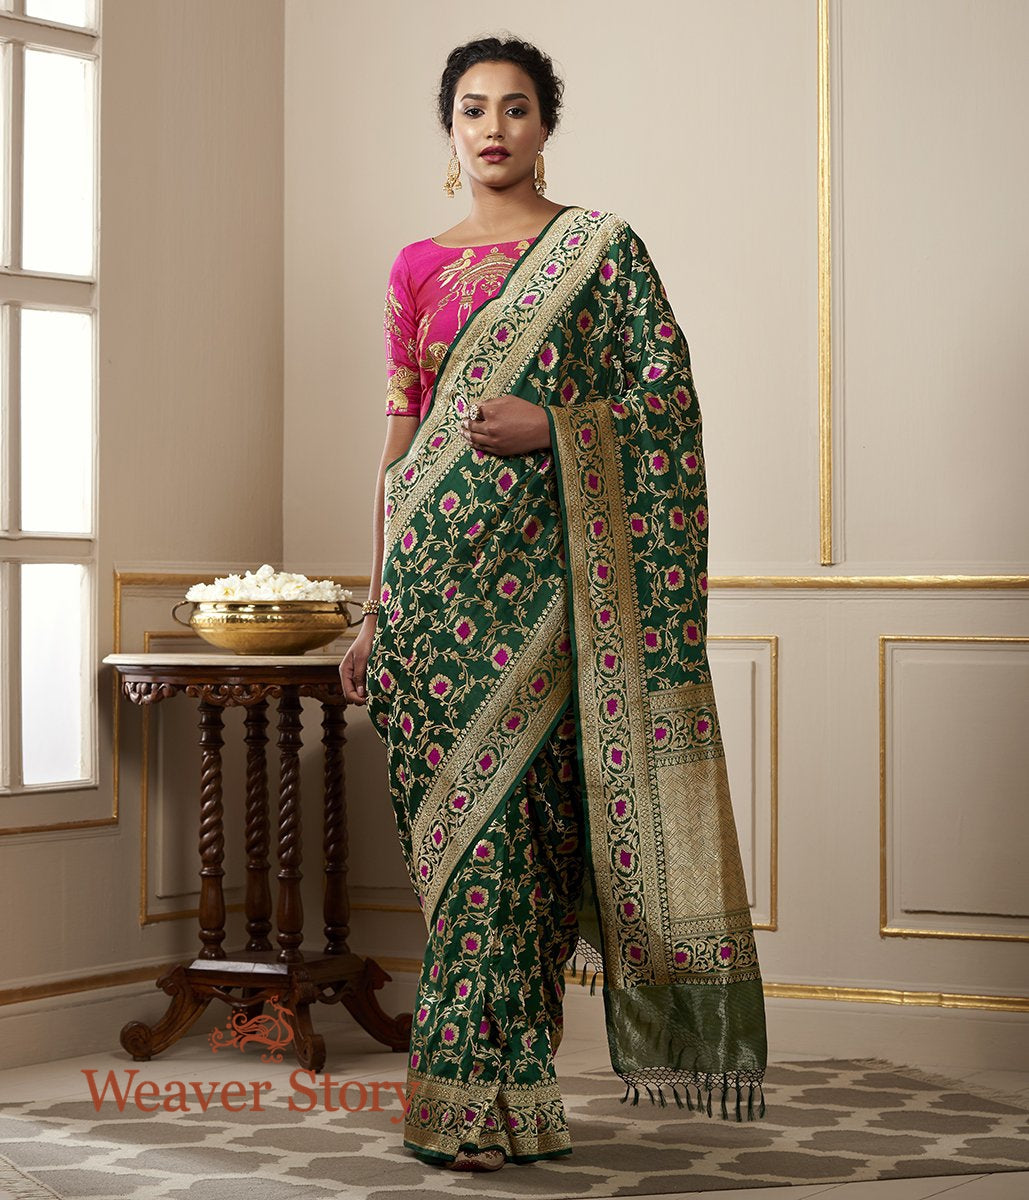 Handwoven Emerald Green Banarasi Jangla with Pink Meenakari